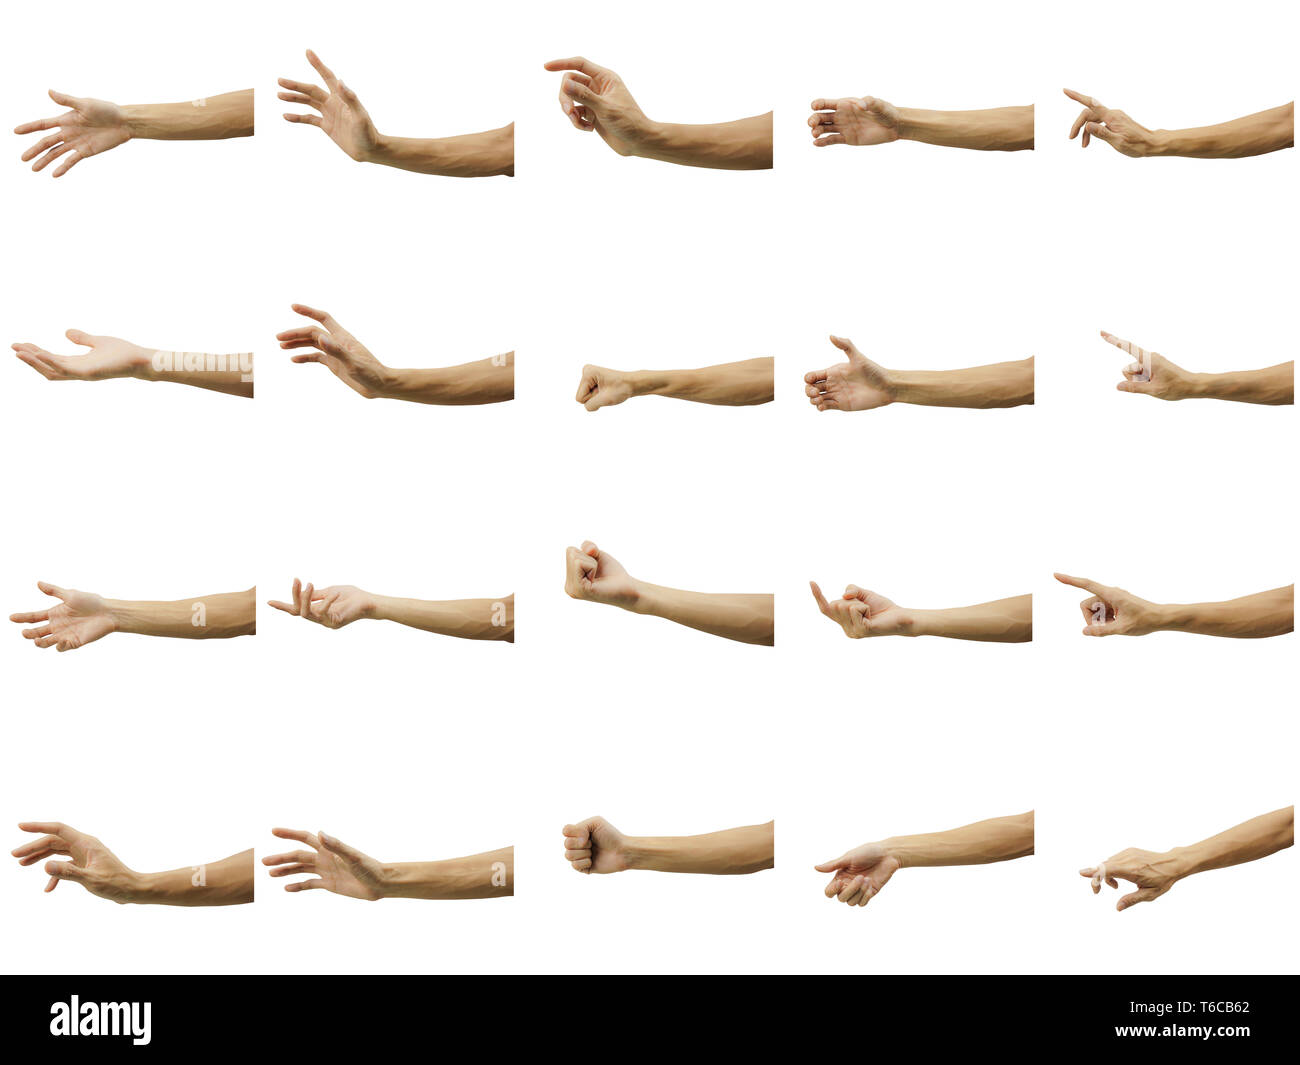 Multiple of man's hand gesture isolated on white background. Carefully cut out by pen tool and insert a clipping path. - Stock Image